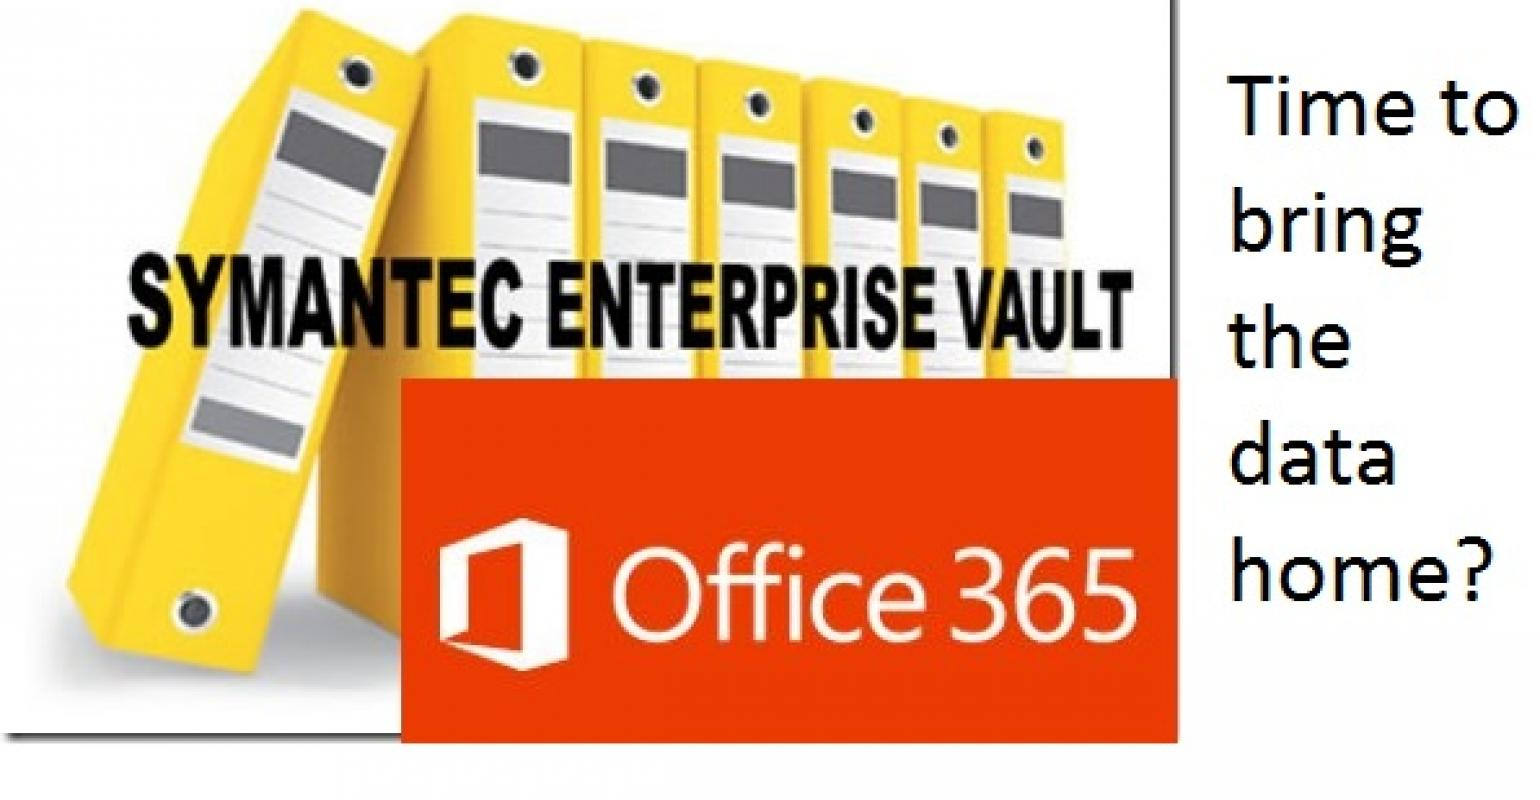 Microsoft declares war on Symantec Enterprise Vault and